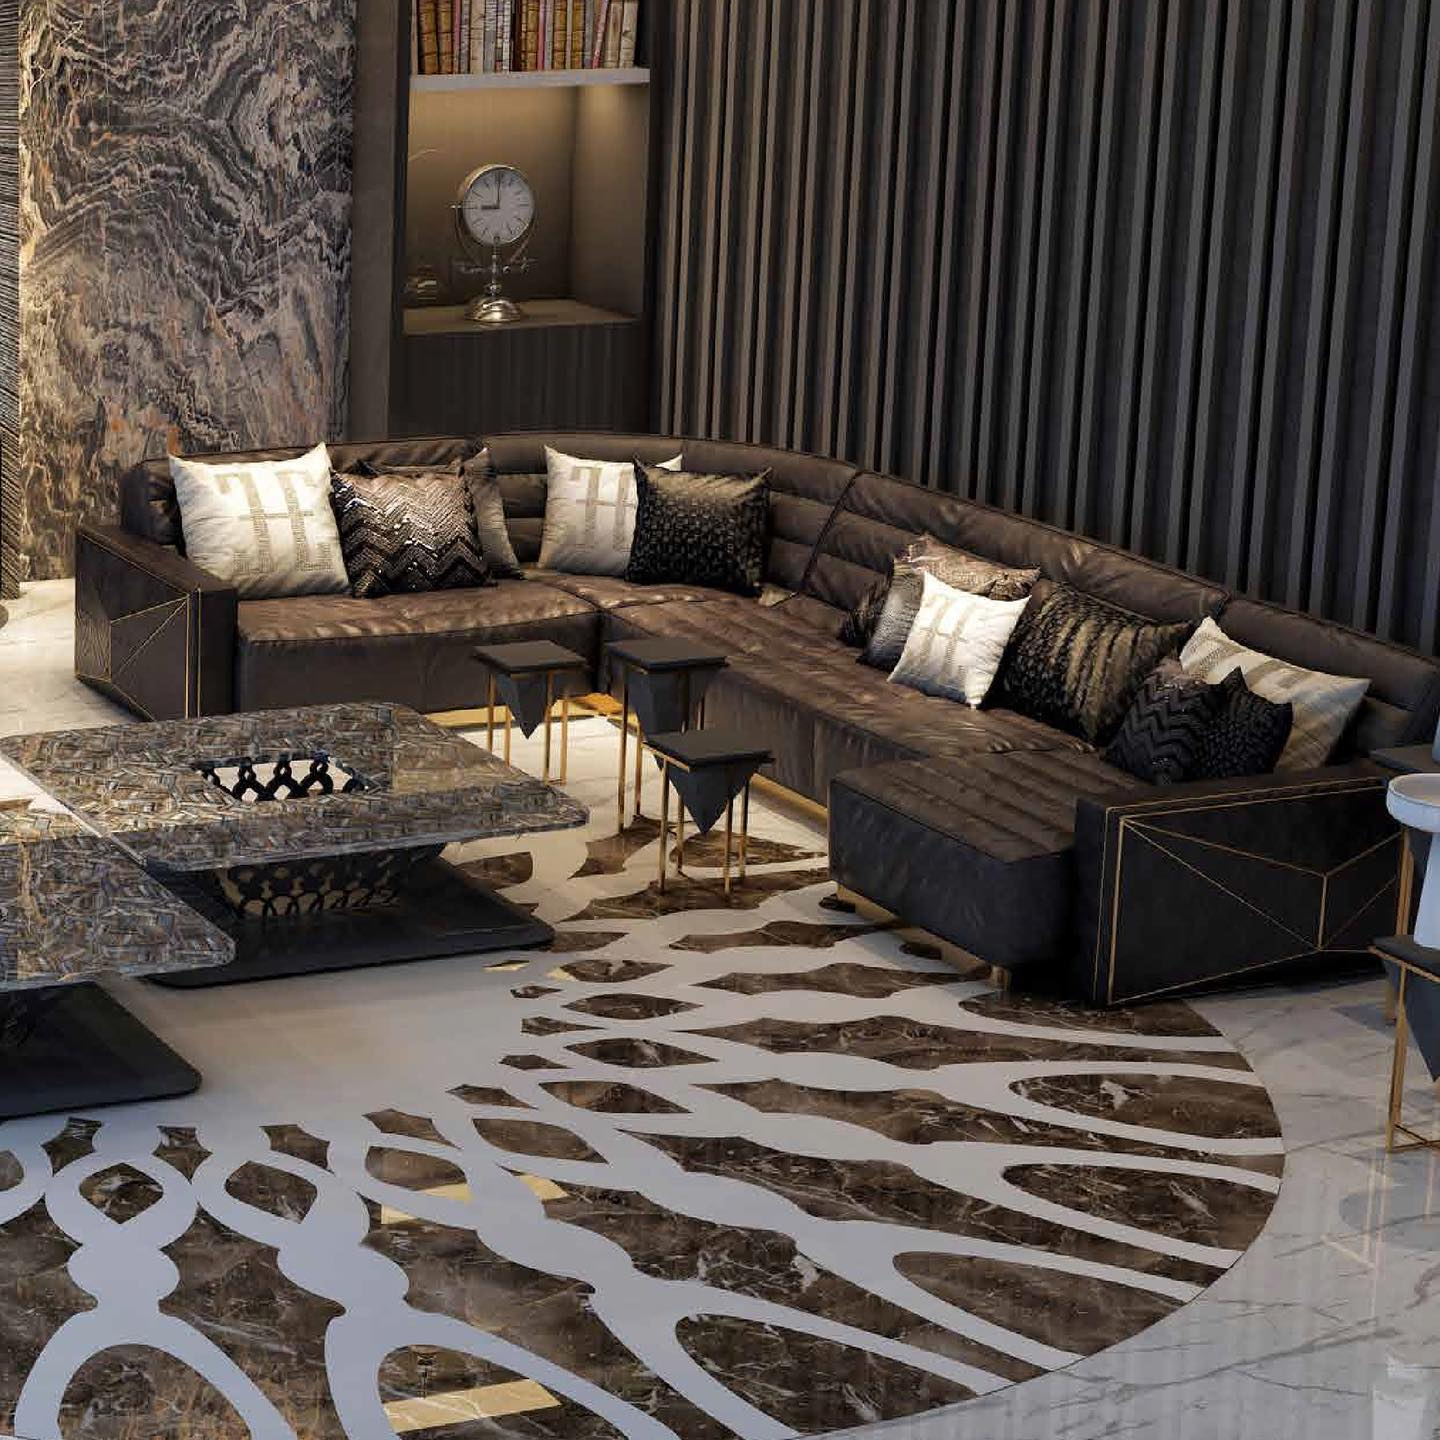 How to hire the best interior fit-out services provider in Abu Dhabi